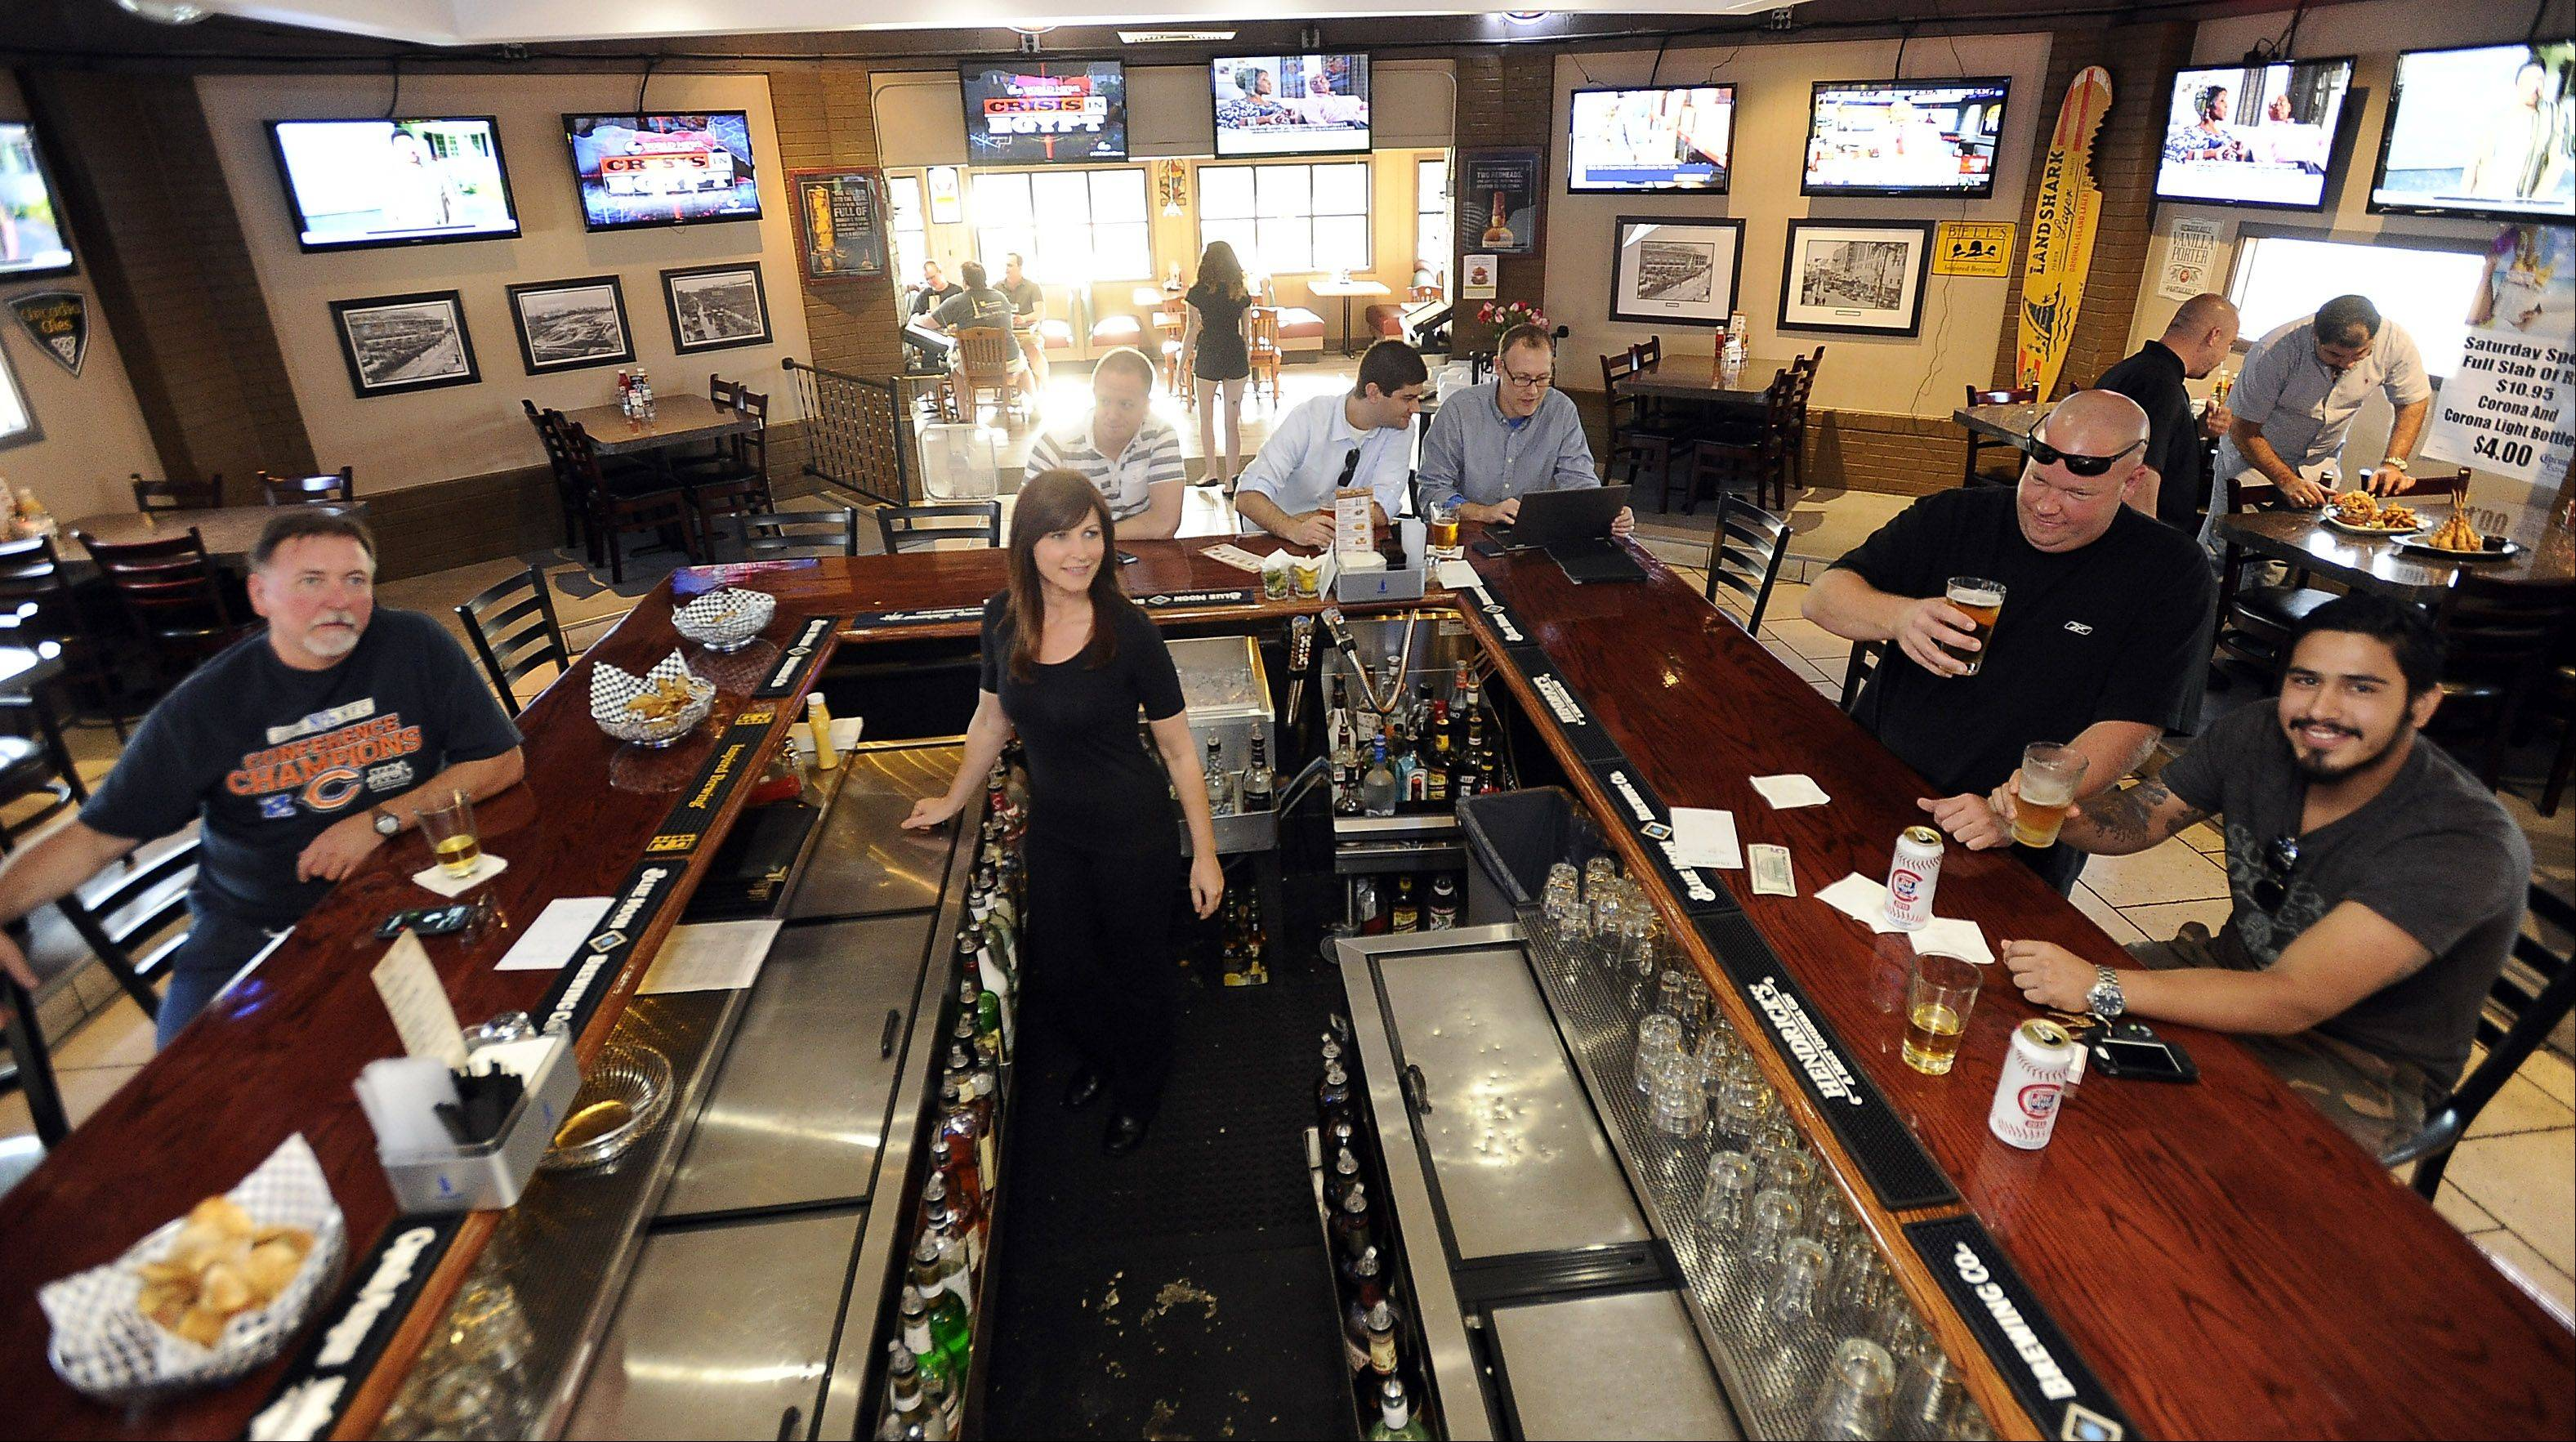 Patrons take in sports and hearty meals at the Union Ale House in Prospect Heights.